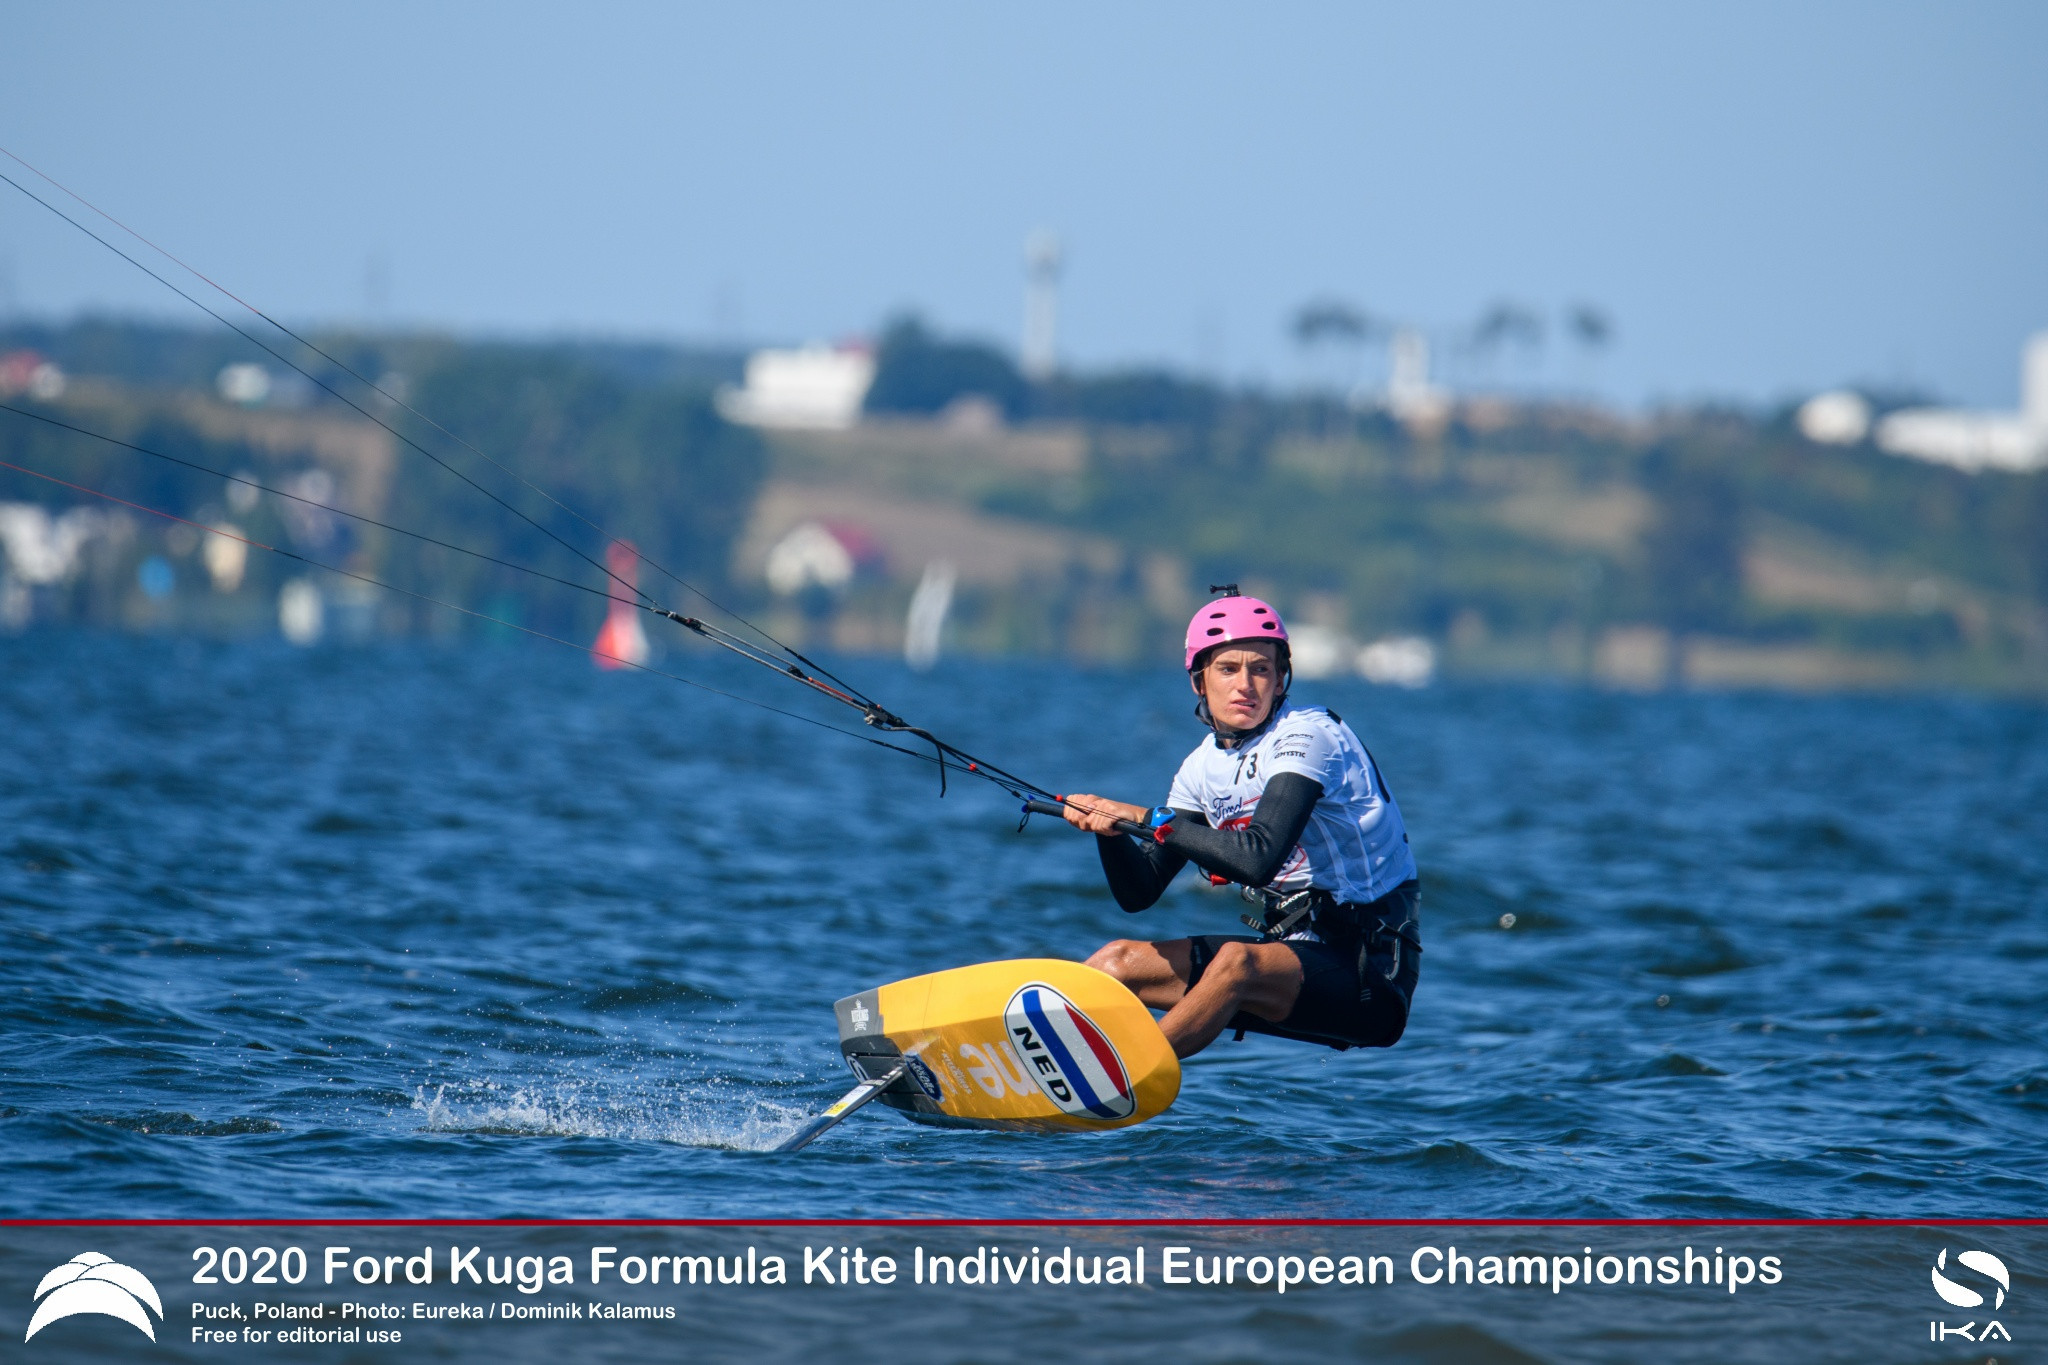 Damasiewicz and De Ramecourt lead after day one of 2020 Formula Kite Individual European Championships